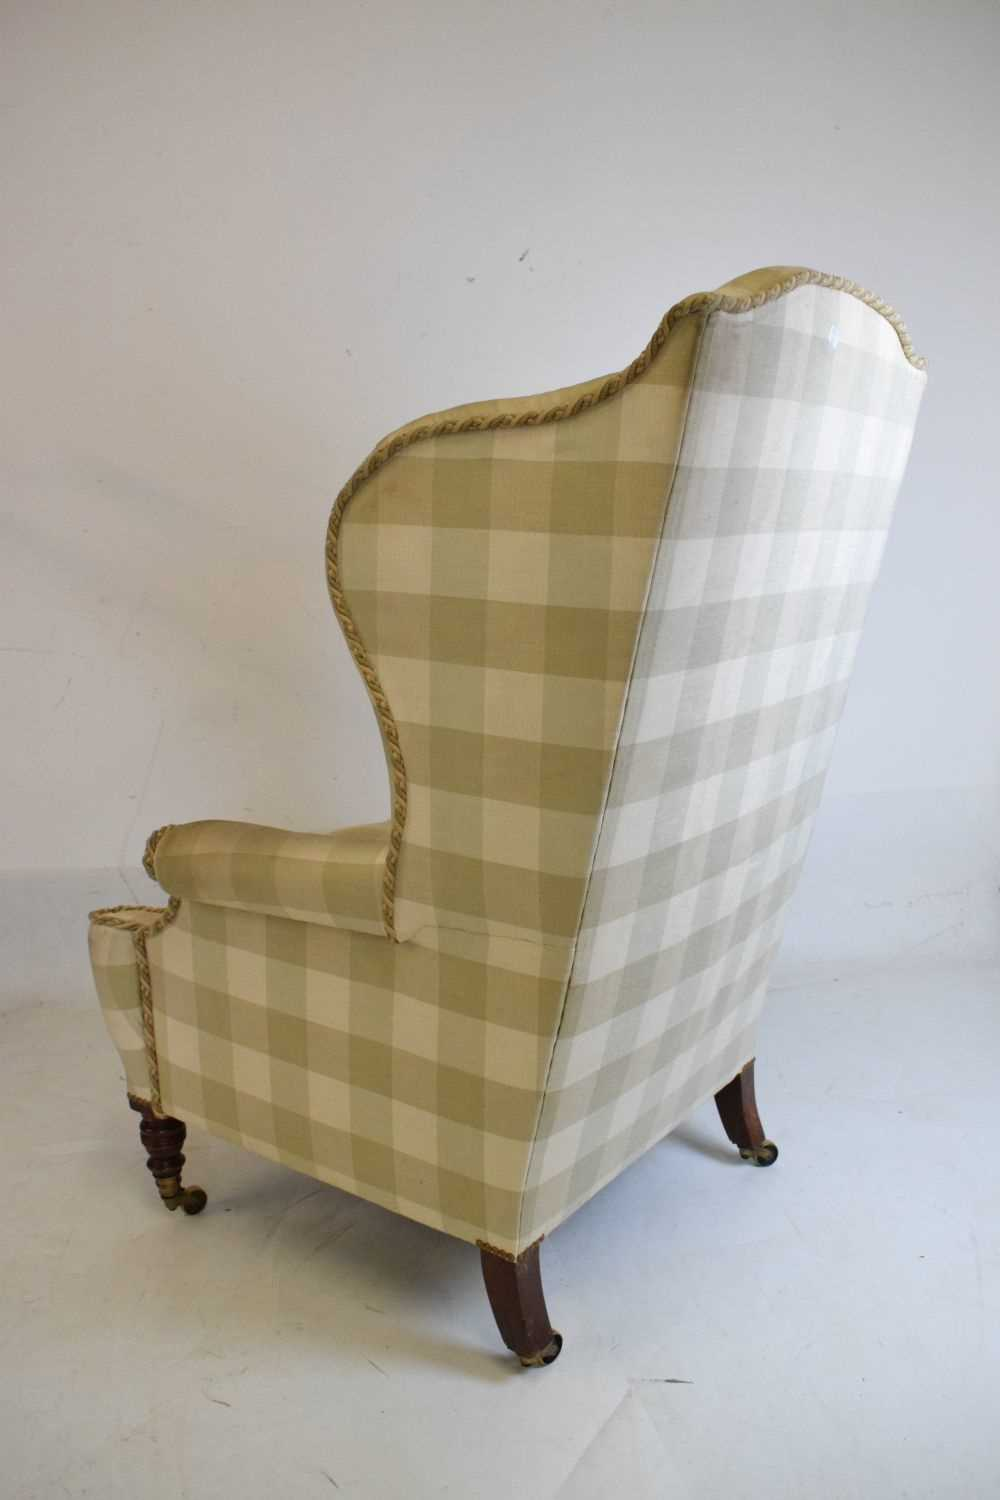 Attributed to Howard & Sons - Late 19th or early 20th Century wing armchair - Image 8 of 10